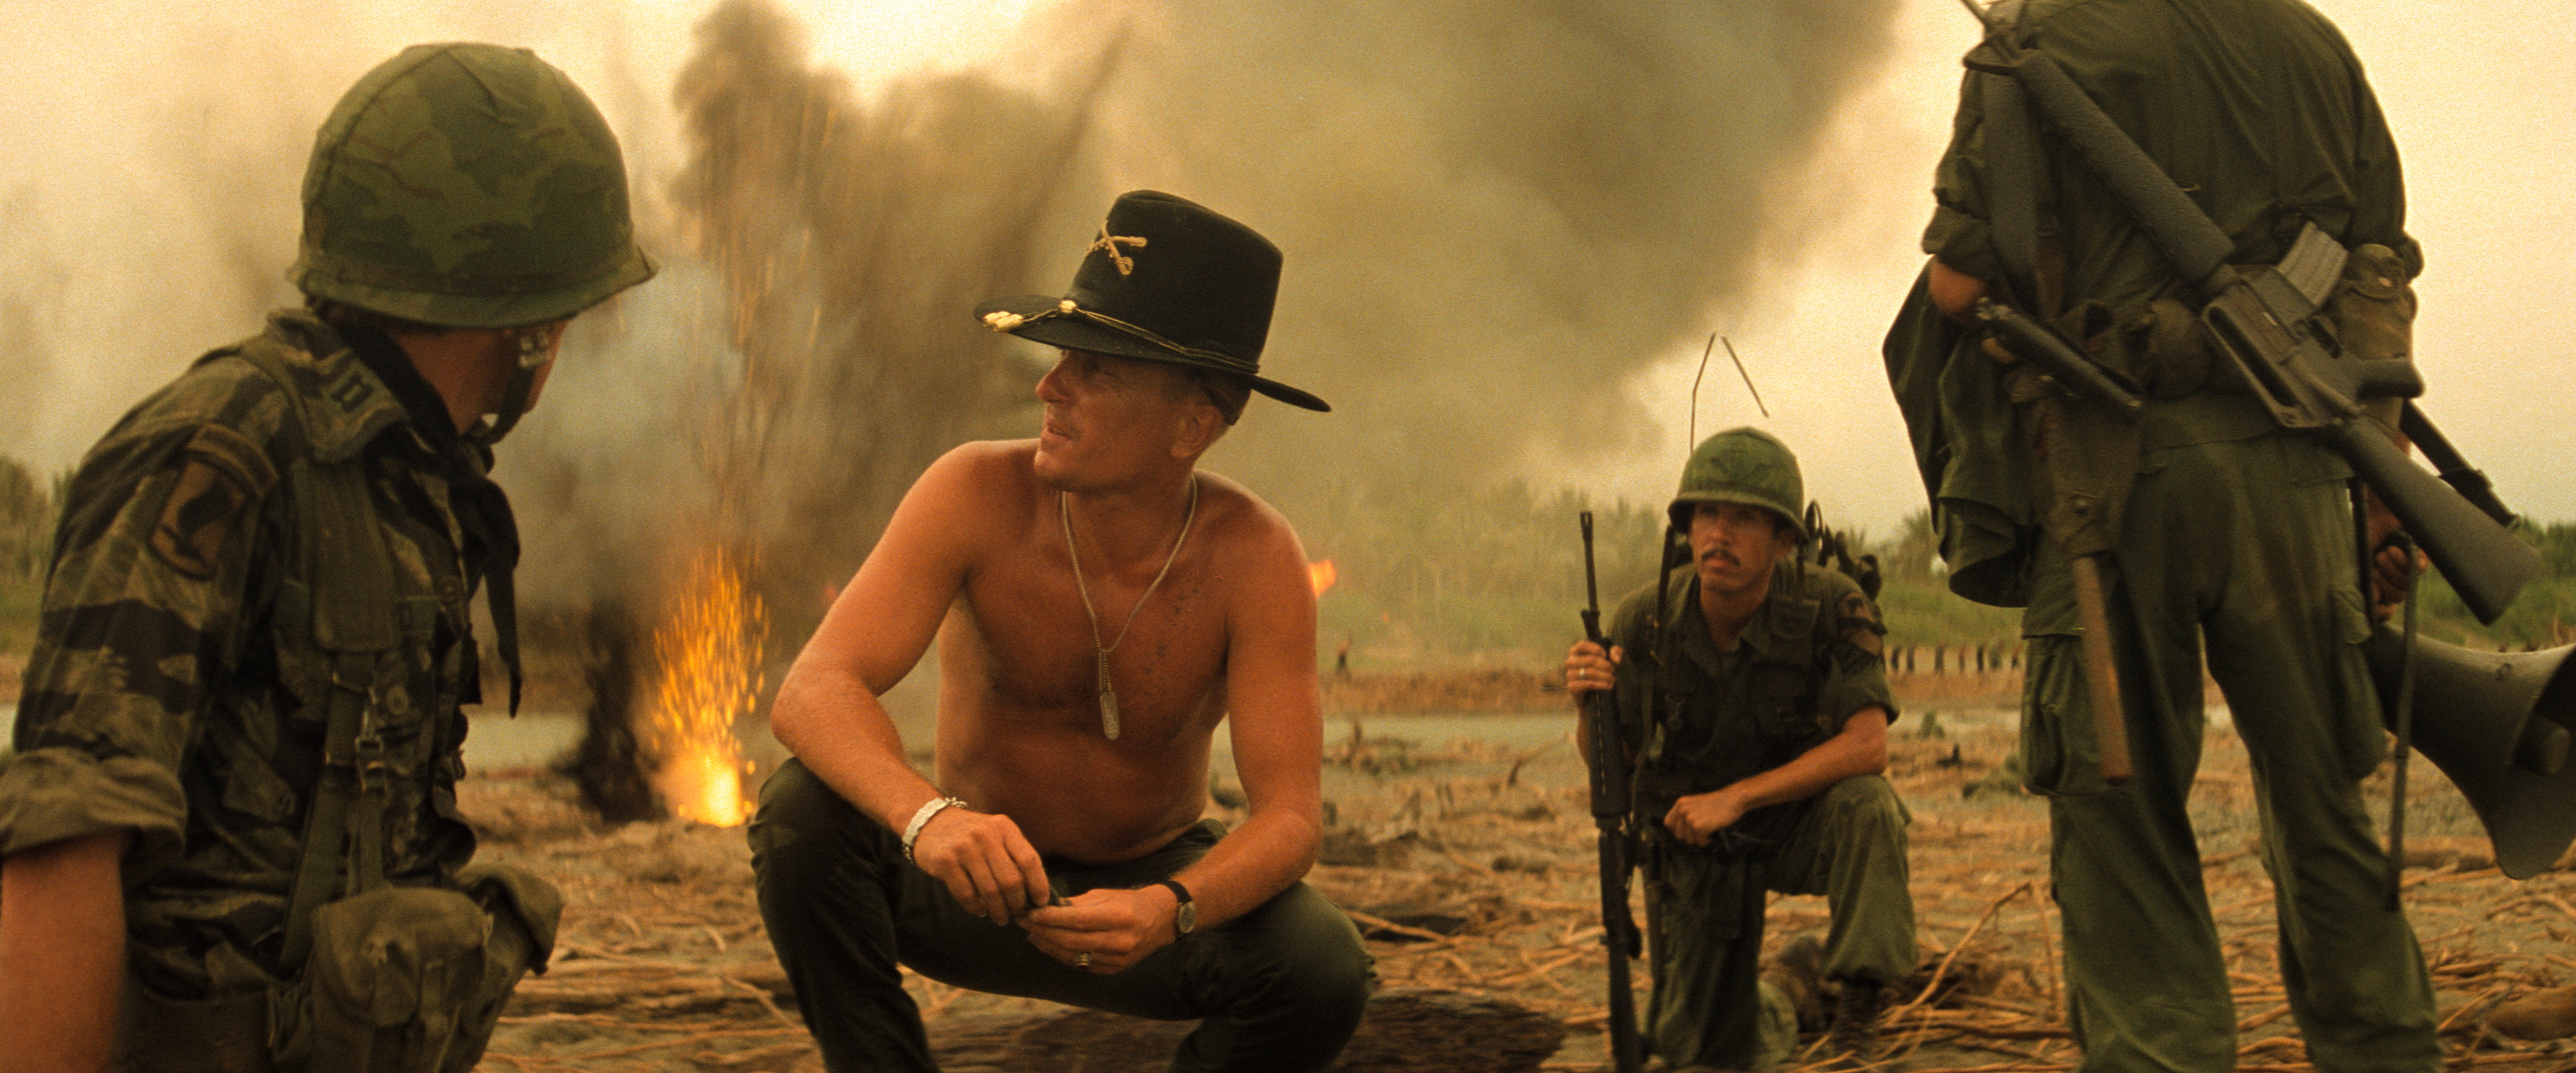 Review: Apocalypse Now: Final Cut